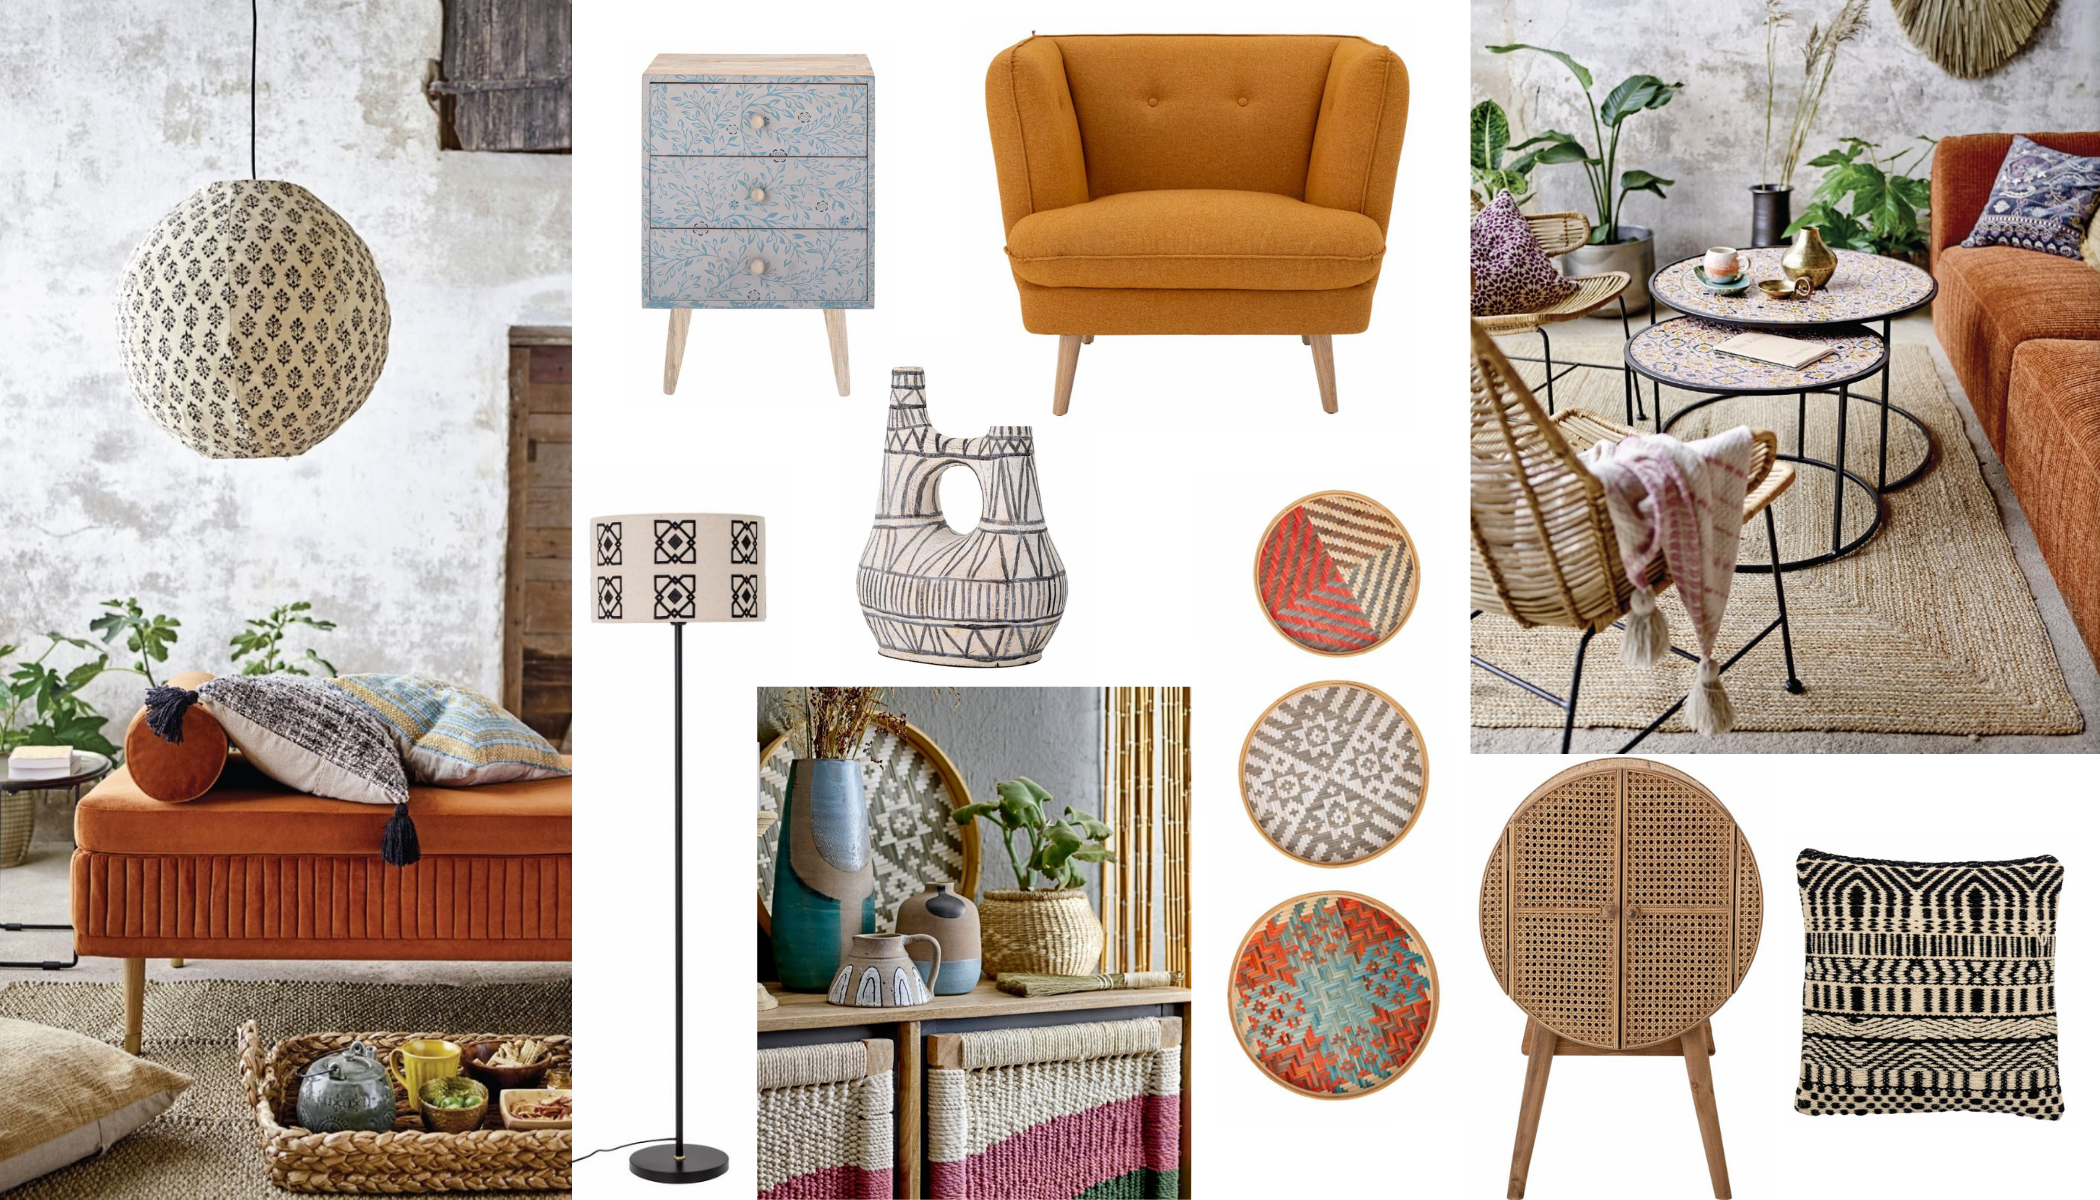 Boho eclectic design style